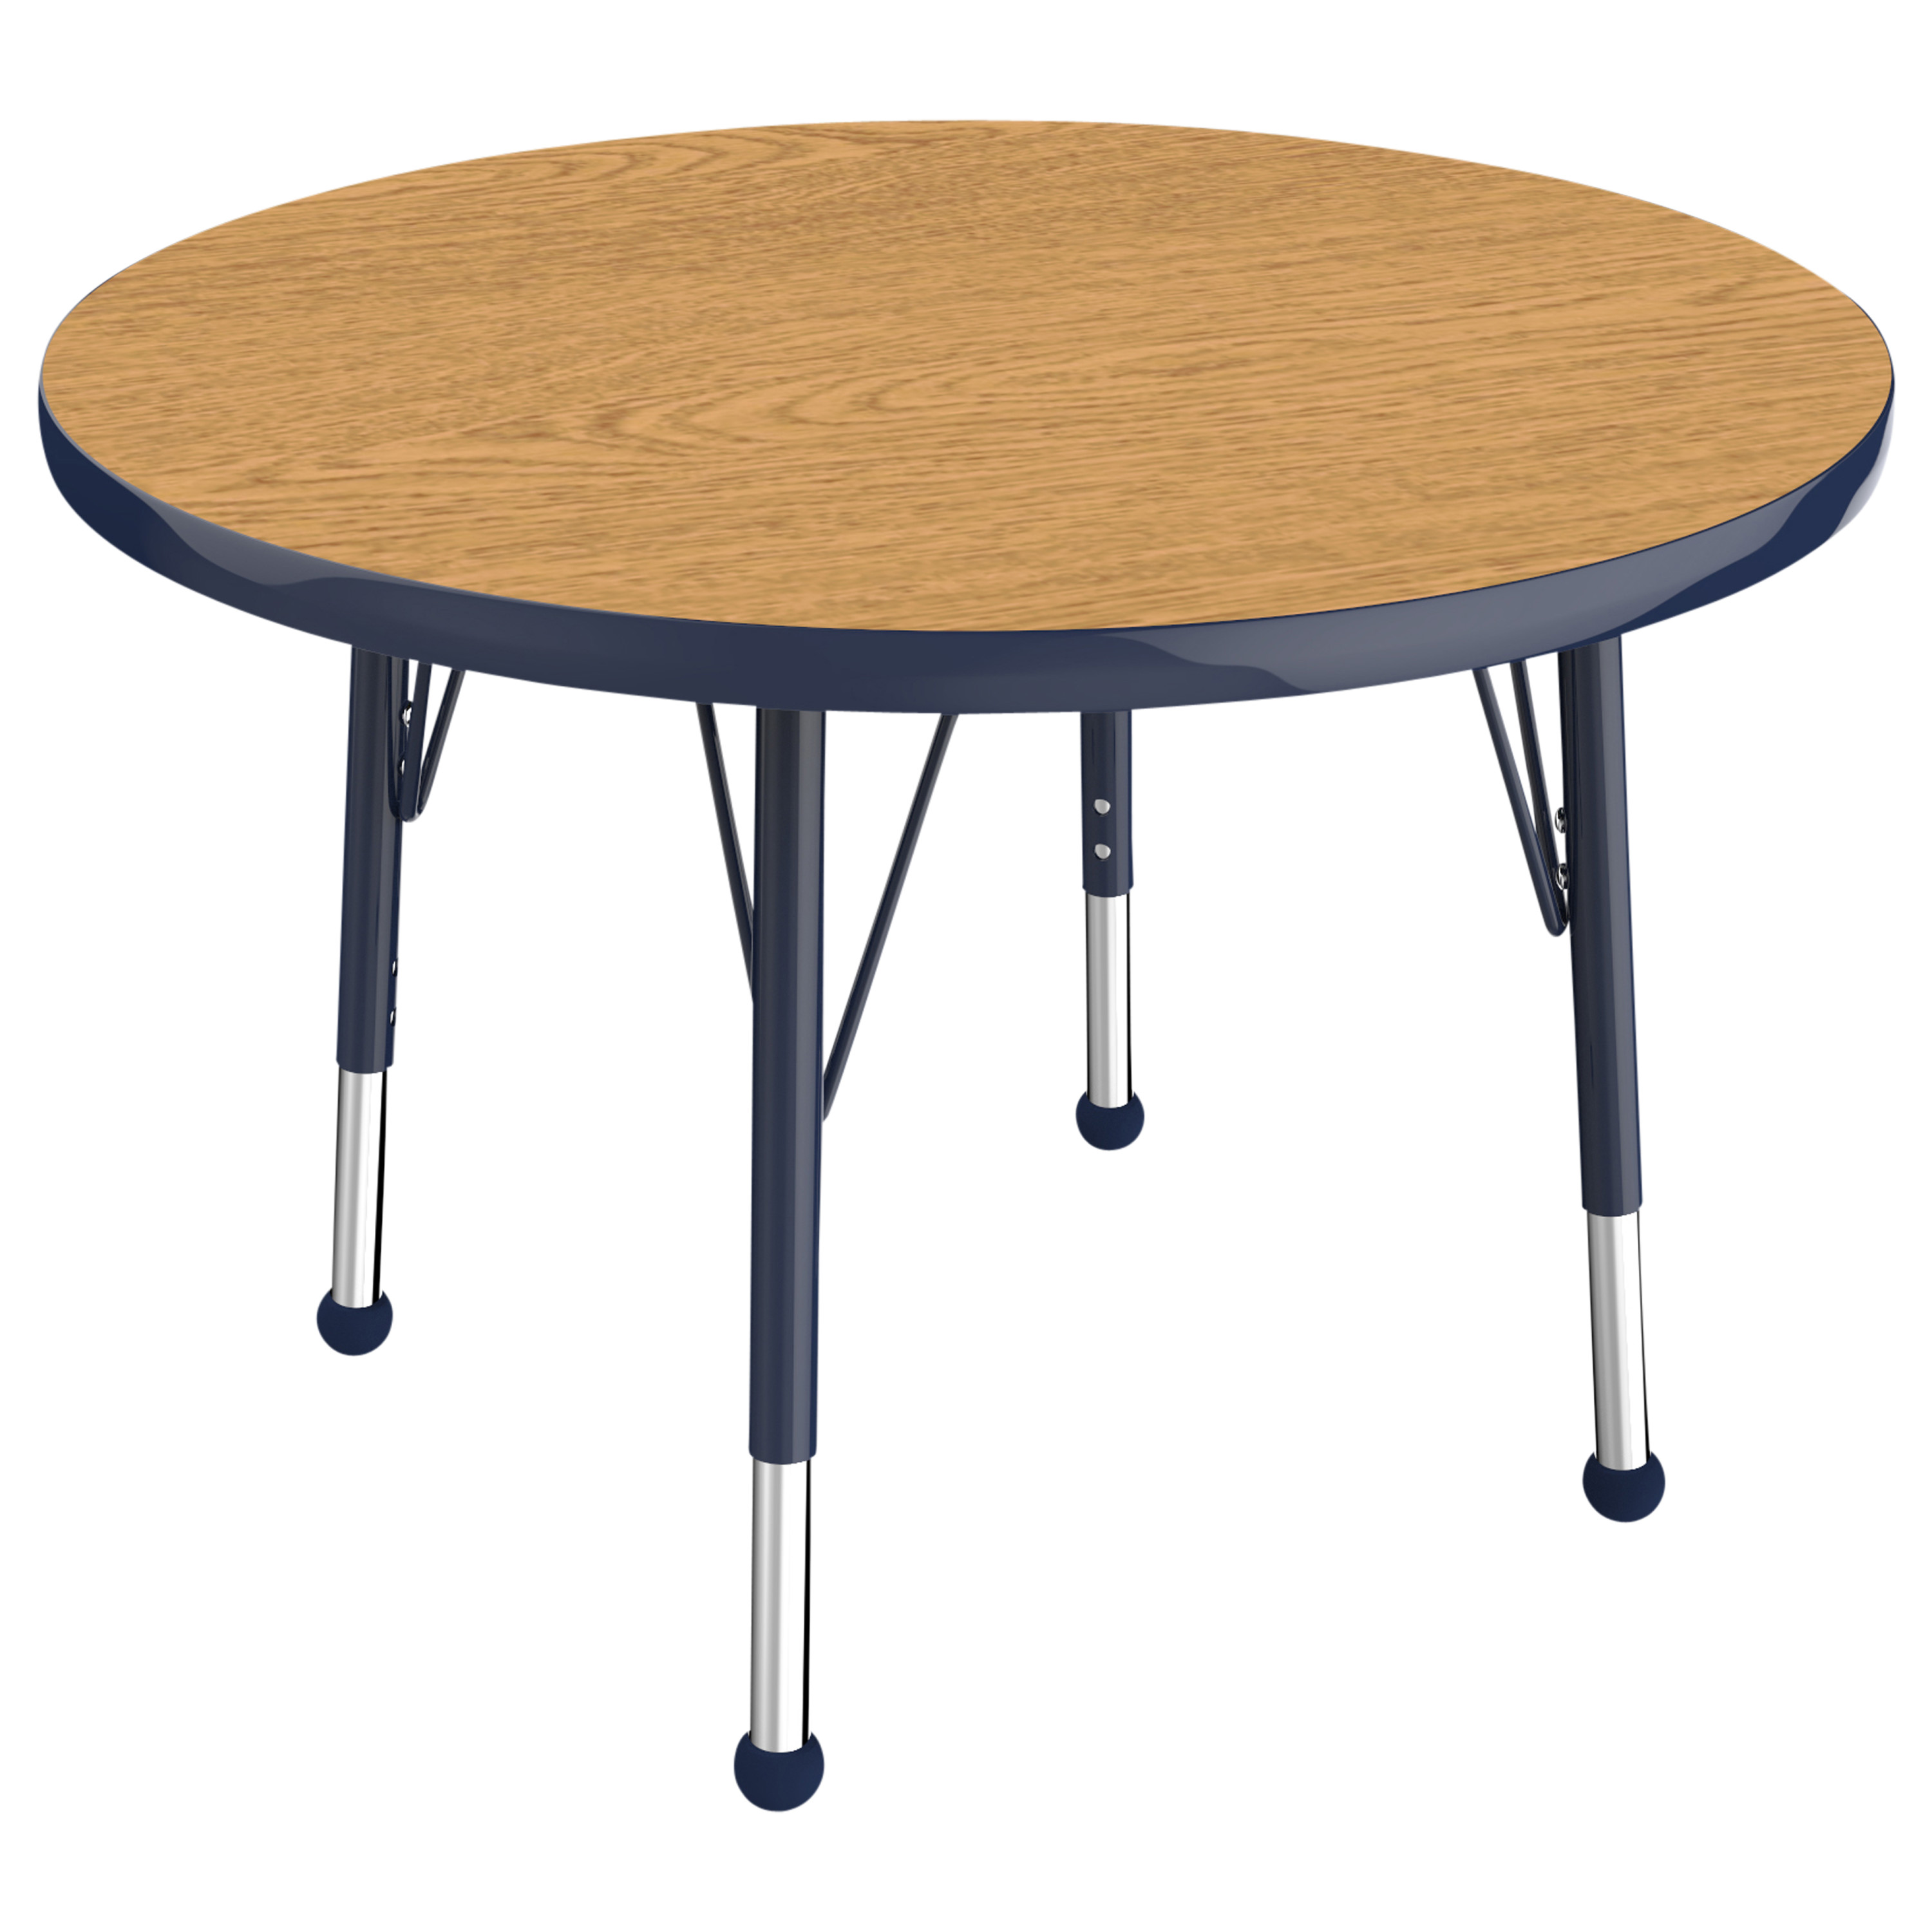 ECR4Kids 30in Round Everyday T-Mold Adjustable Activity Table Oak/Navy - Toddler Ball